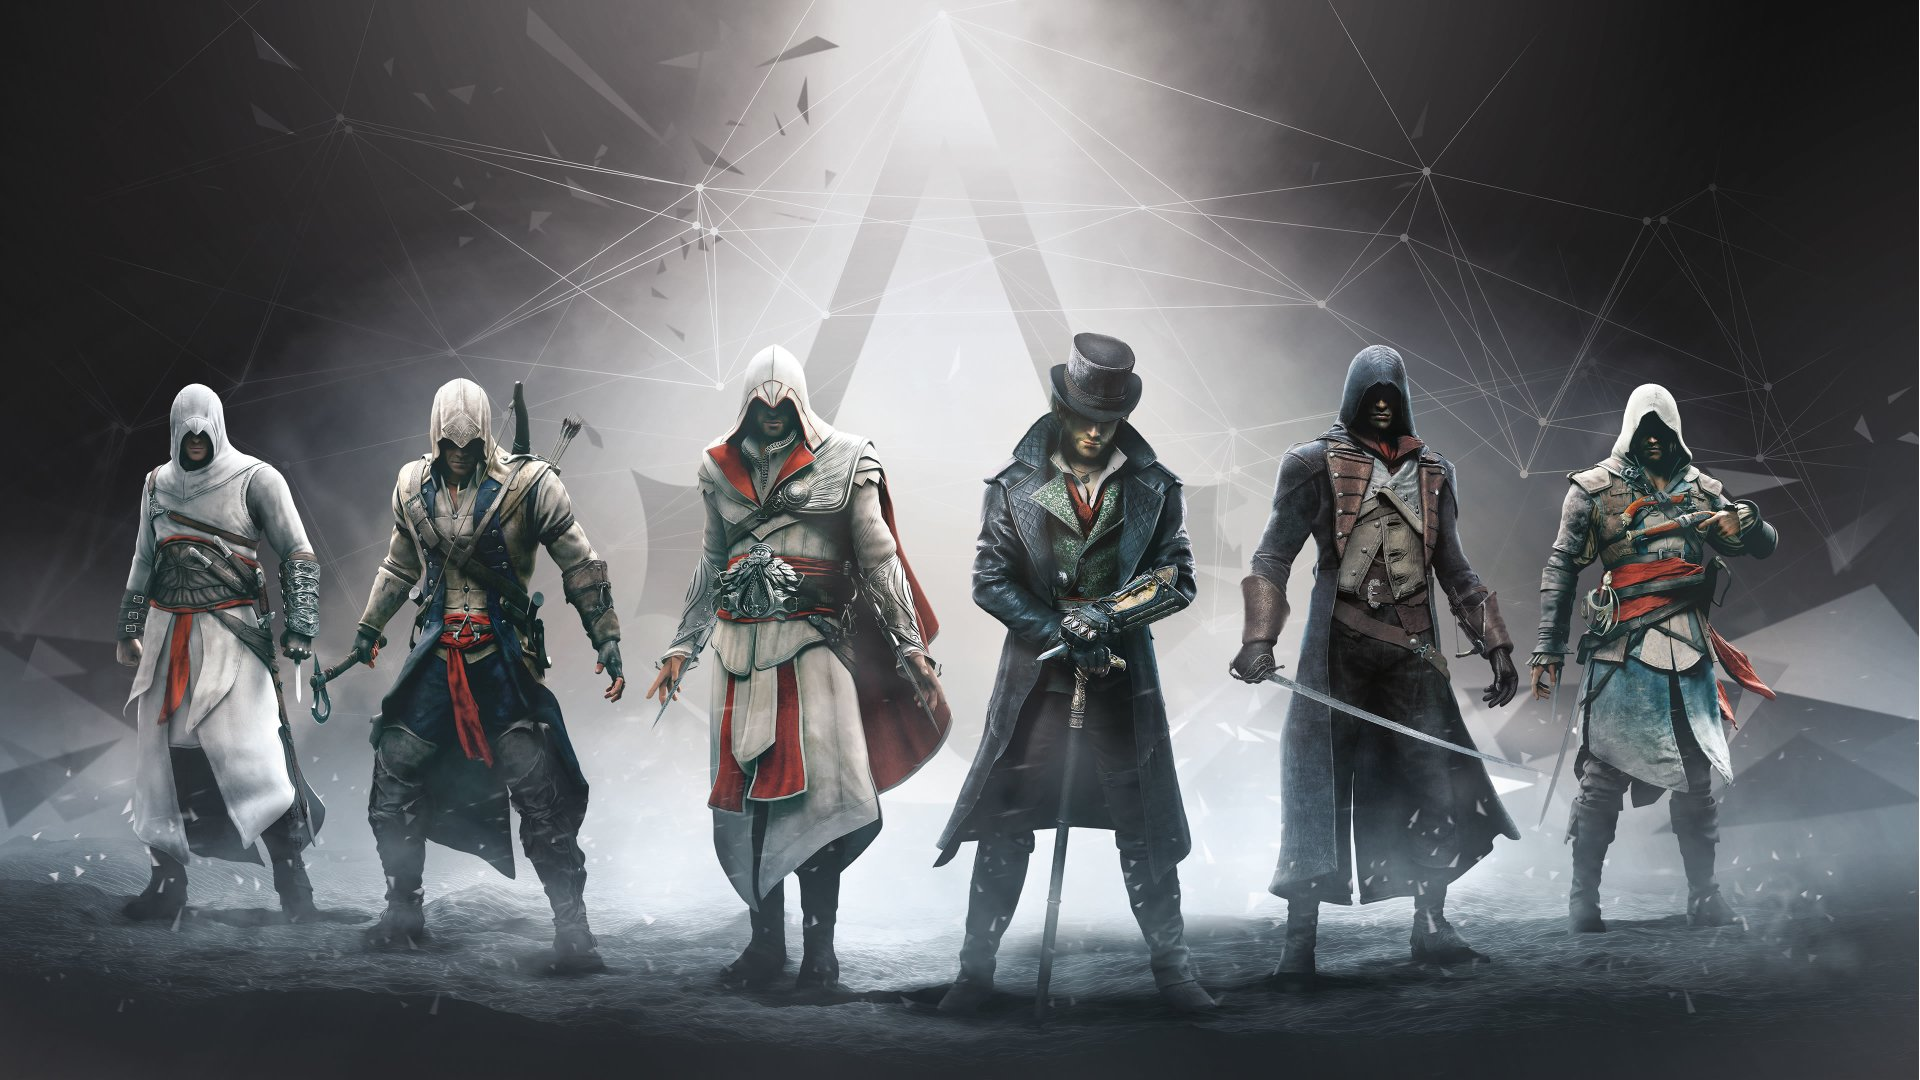 22 Altair Assassin S Creed Hd Wallpapers Background Images Wallpaper Abyss